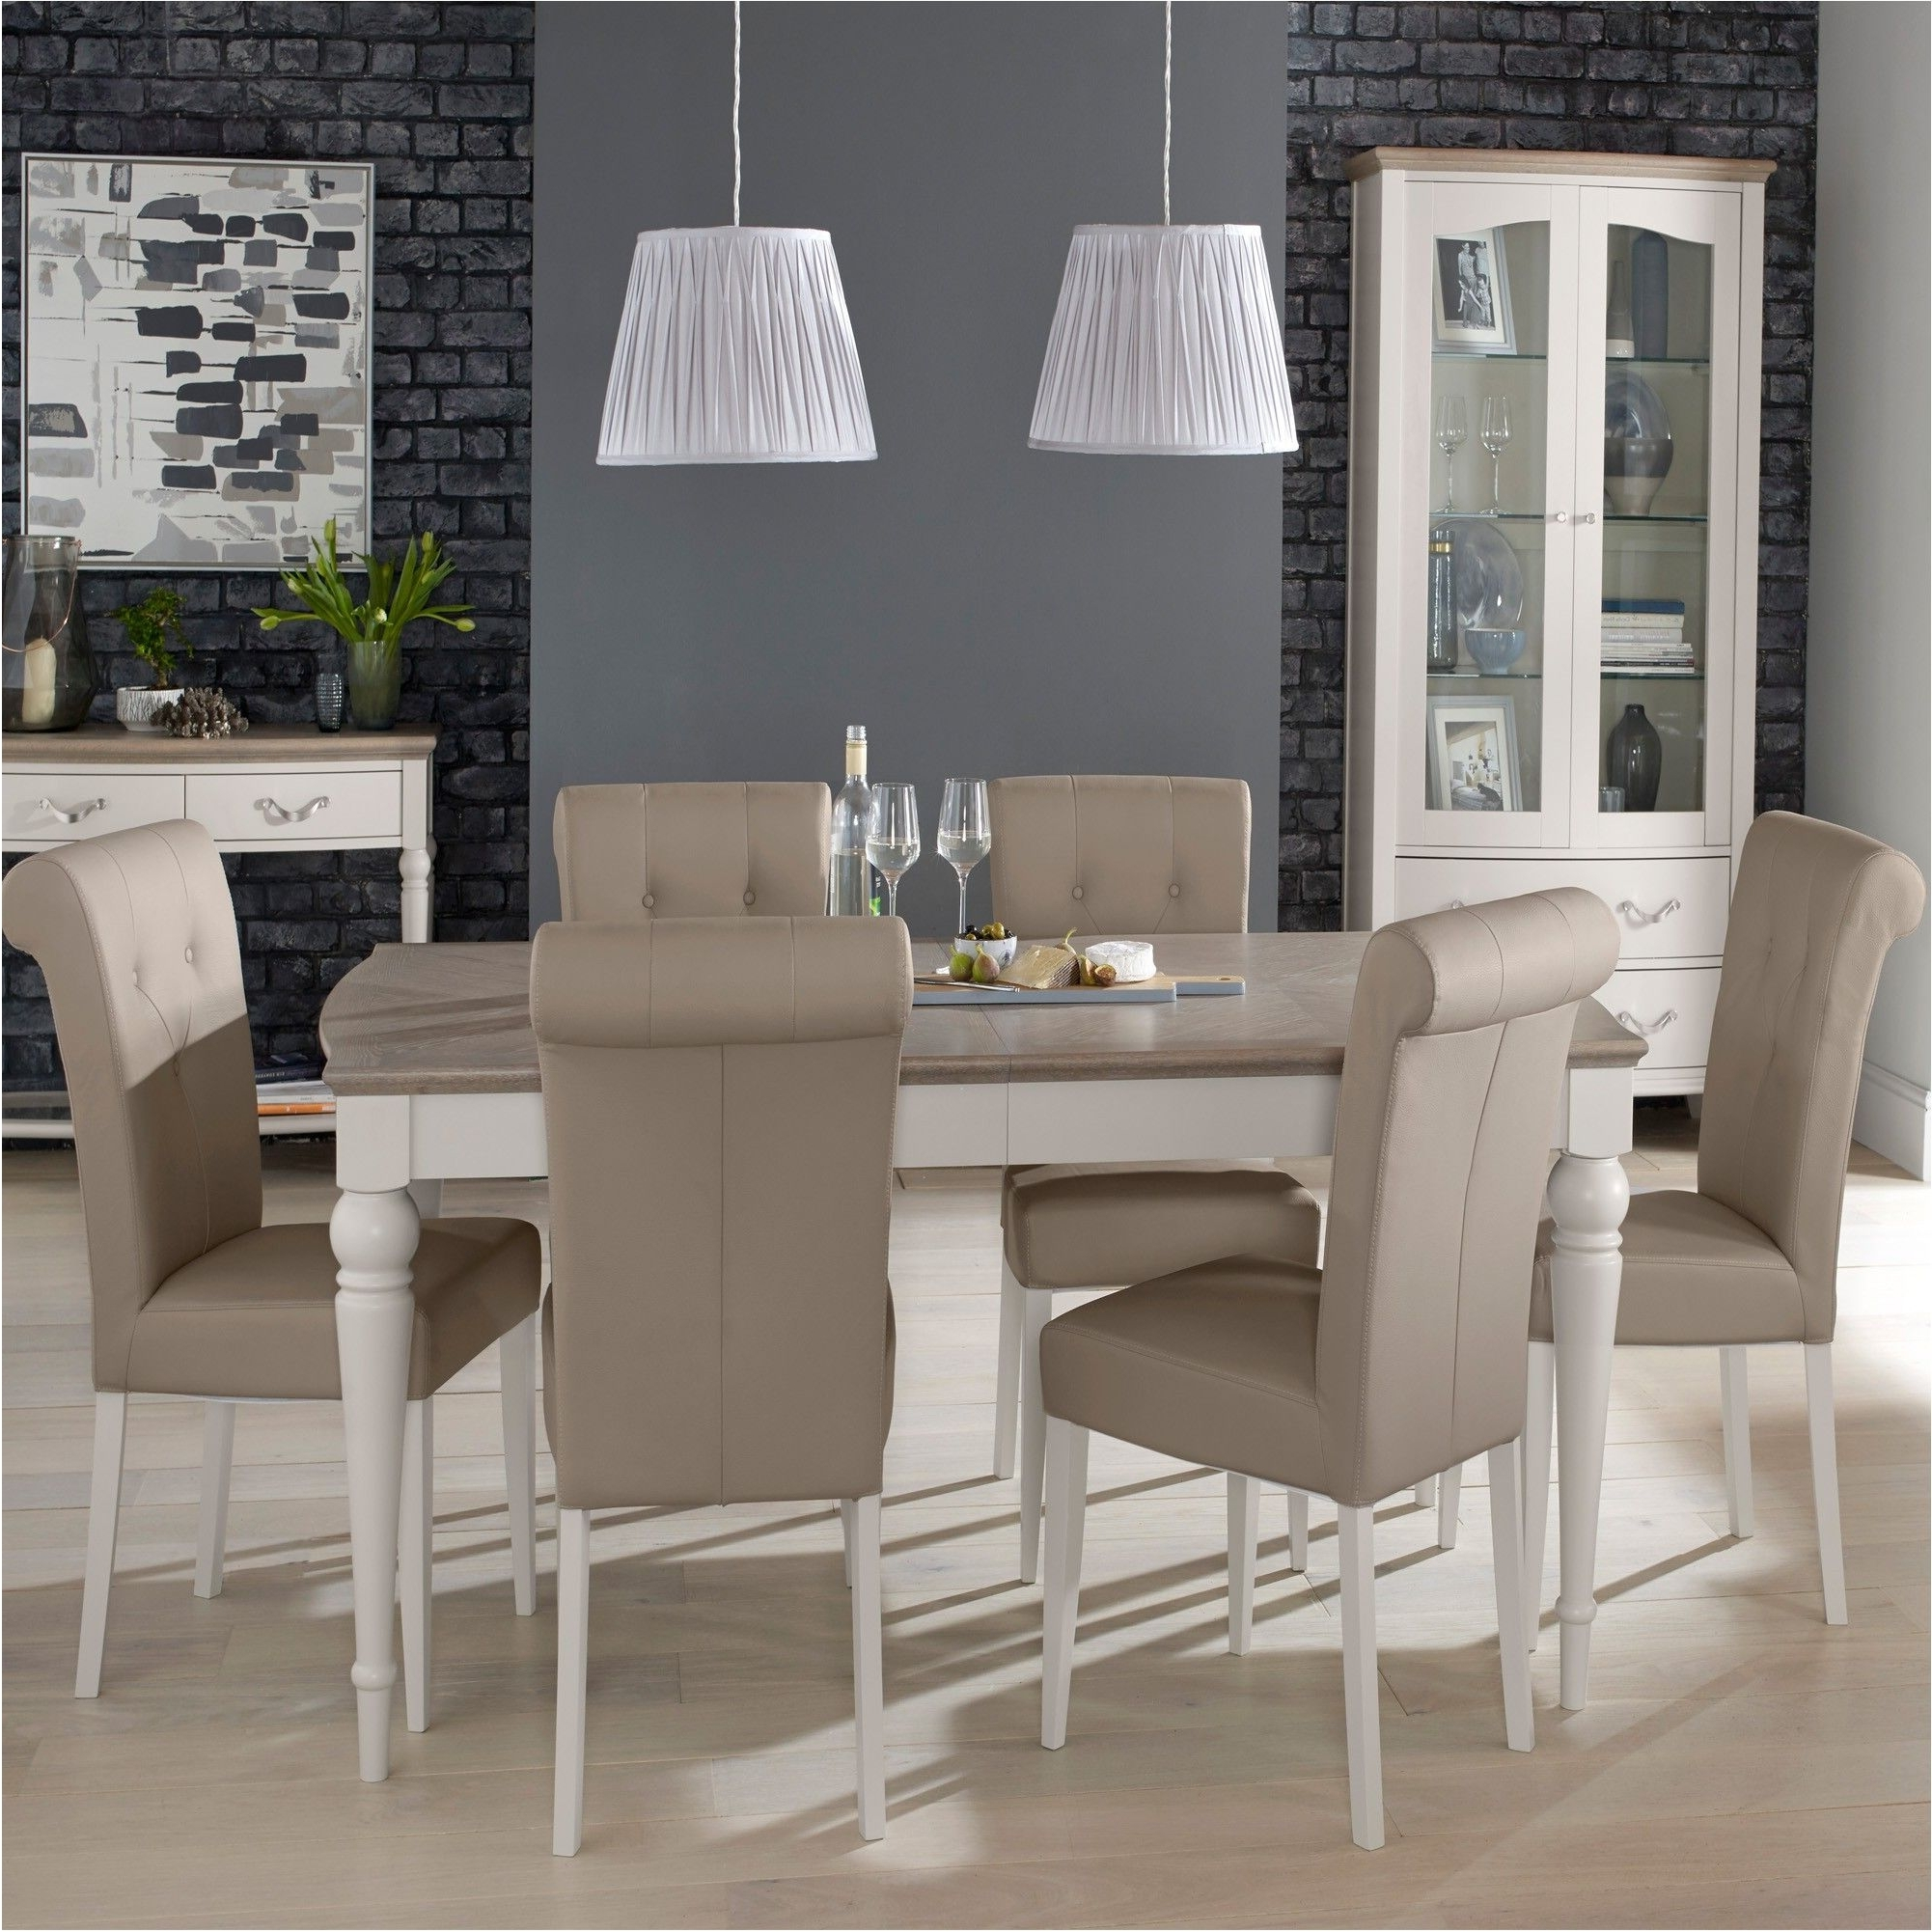 Terrific 3 Steps To Pick The Ultimate Dining Table And 6 Chairs Set In Most Recently Released Dining Tables And 6 Chairs (View 13 of 25)